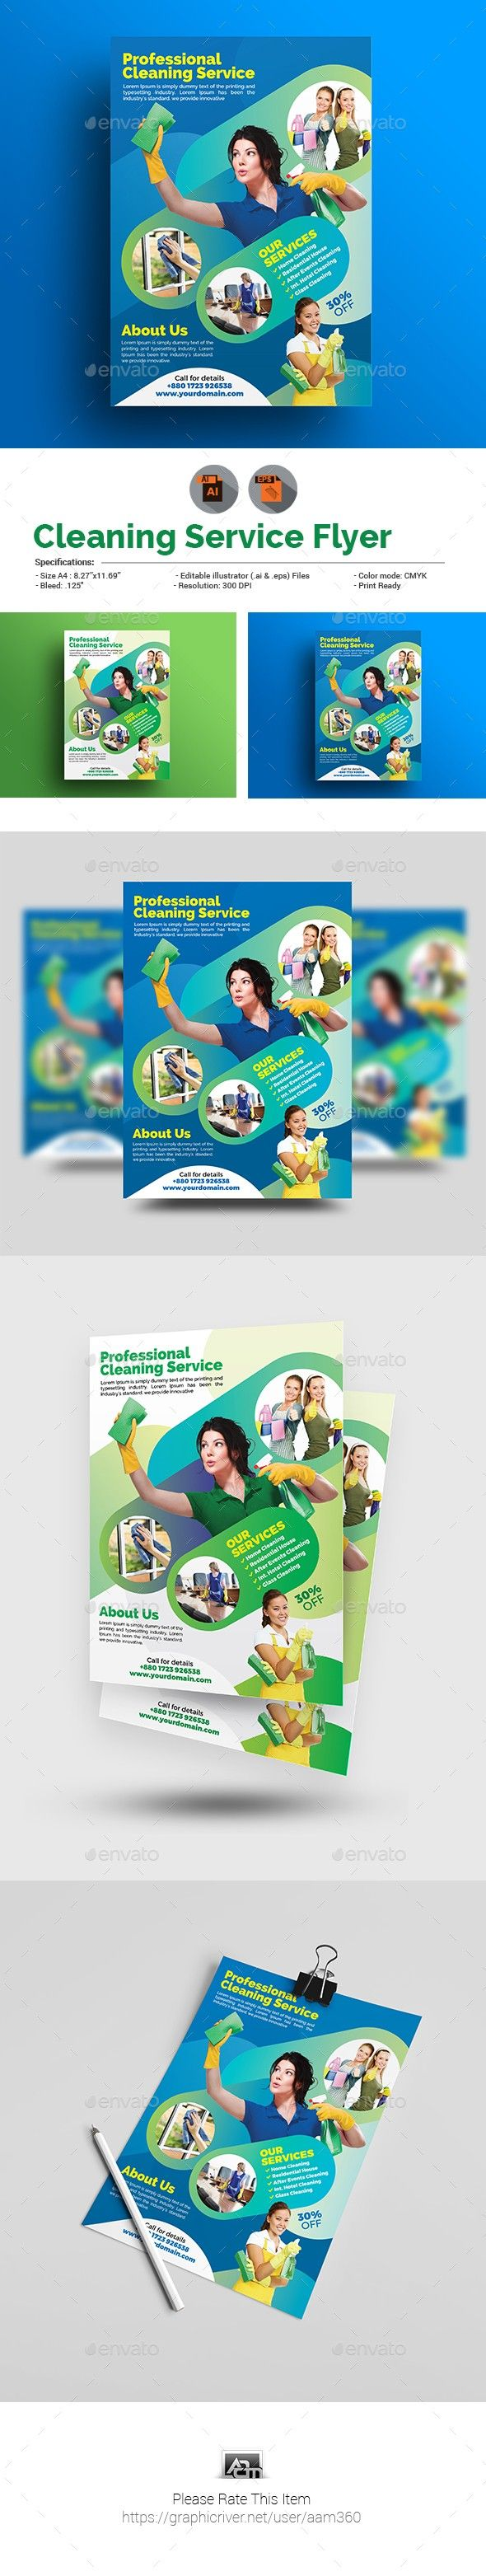 Cleaning Services Flyer Flyer Design Pinterest Cleaning